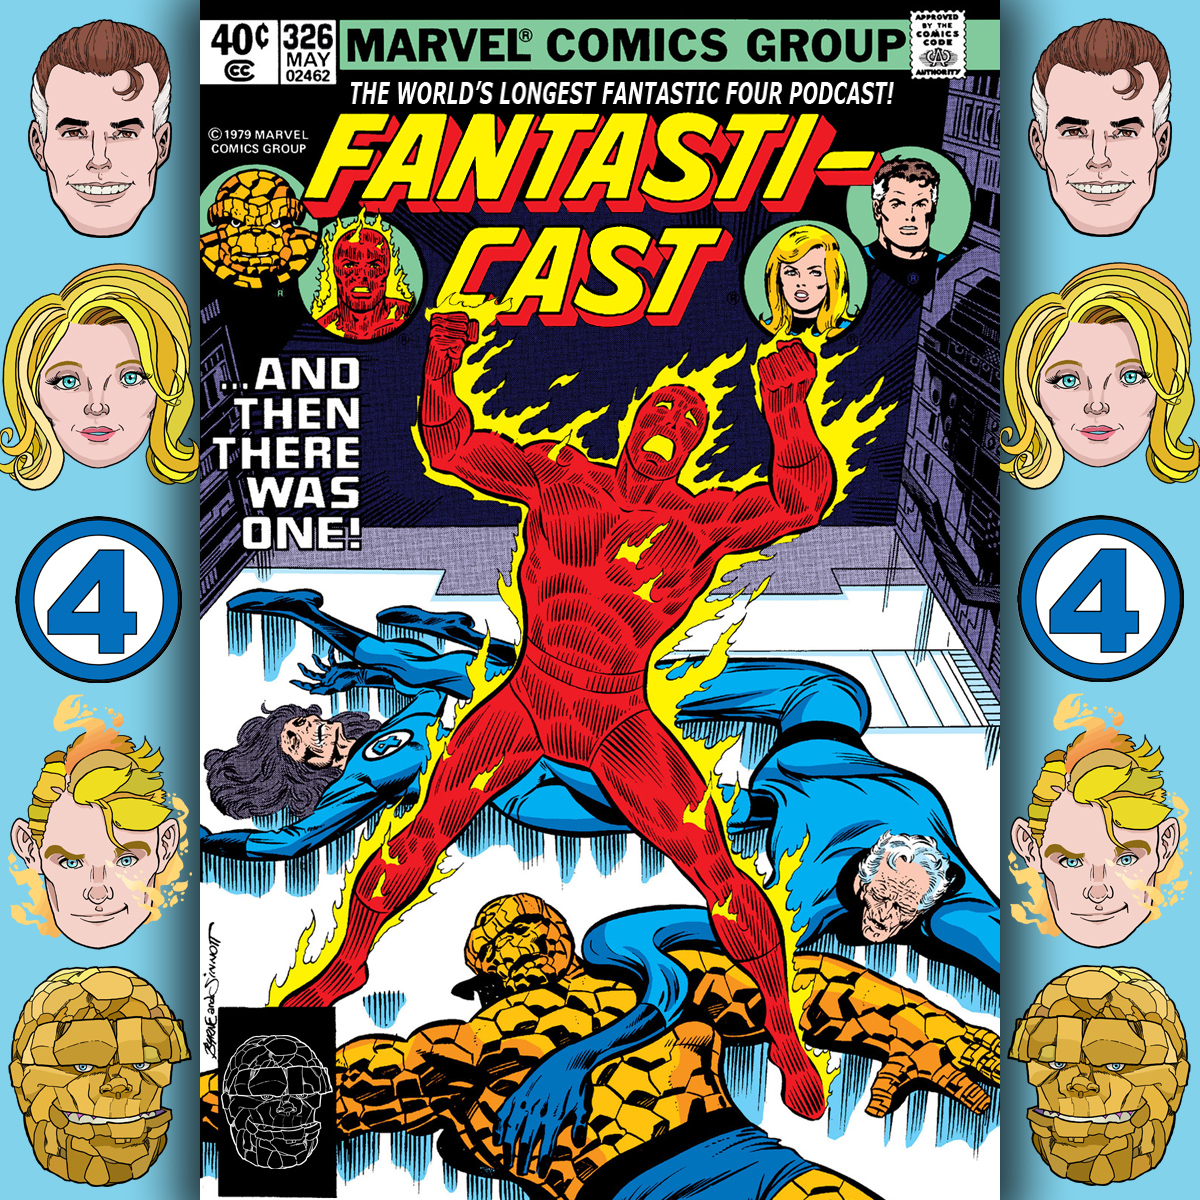 The Fantasticast Episode 326